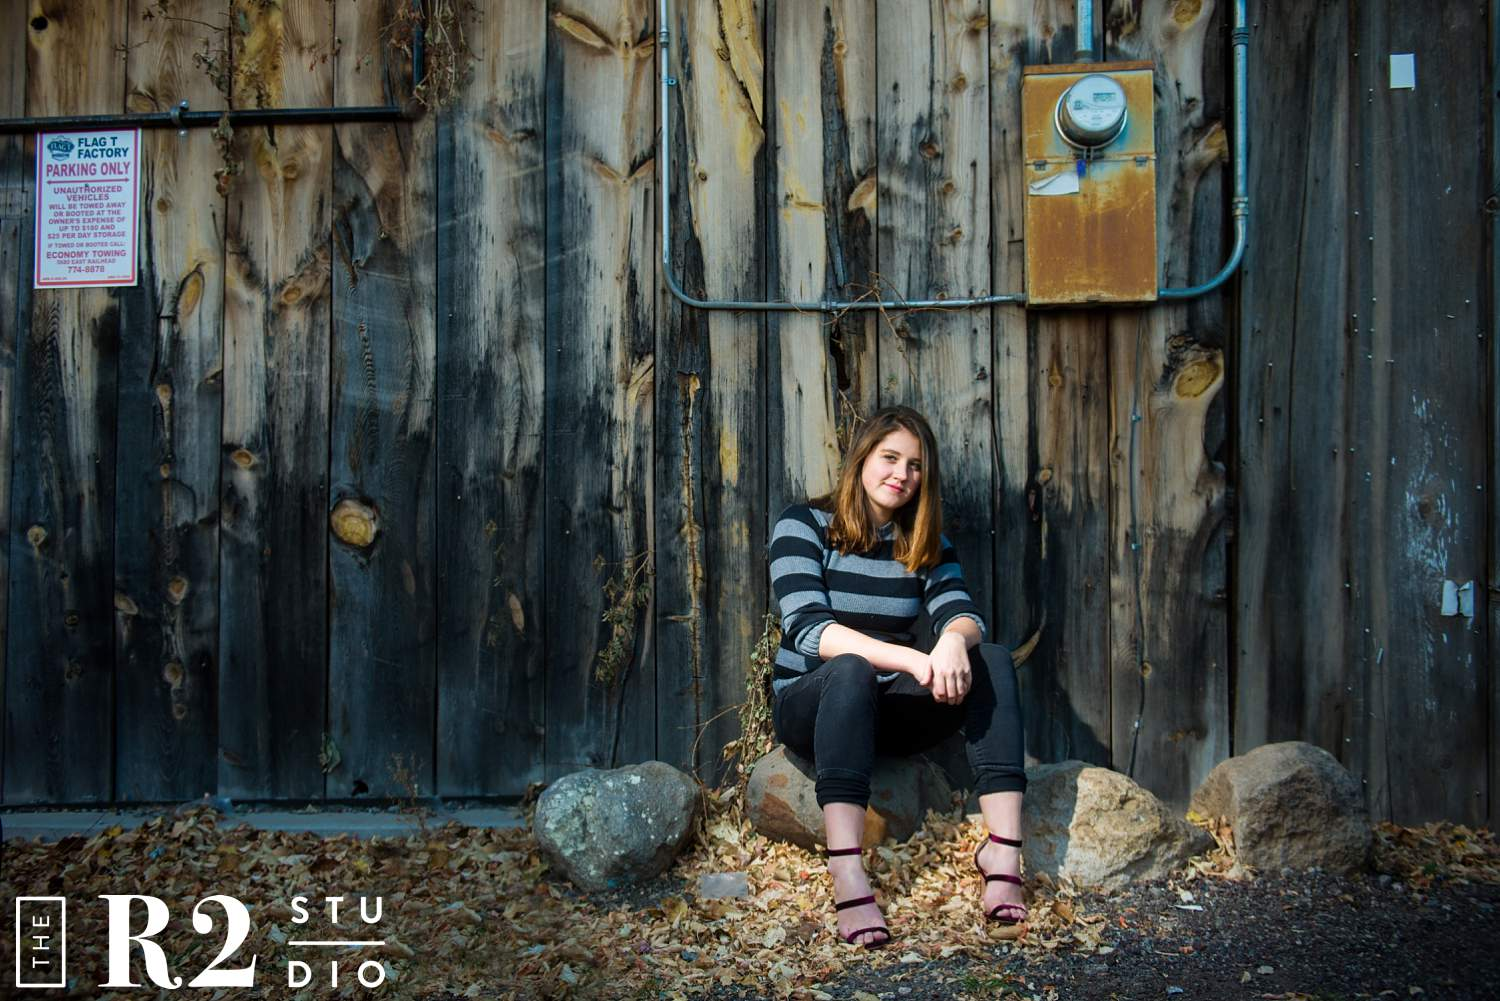 flagstaff senior portrait photographer, the r2 studio, is one of Flagstaff's best senior photo photographers.